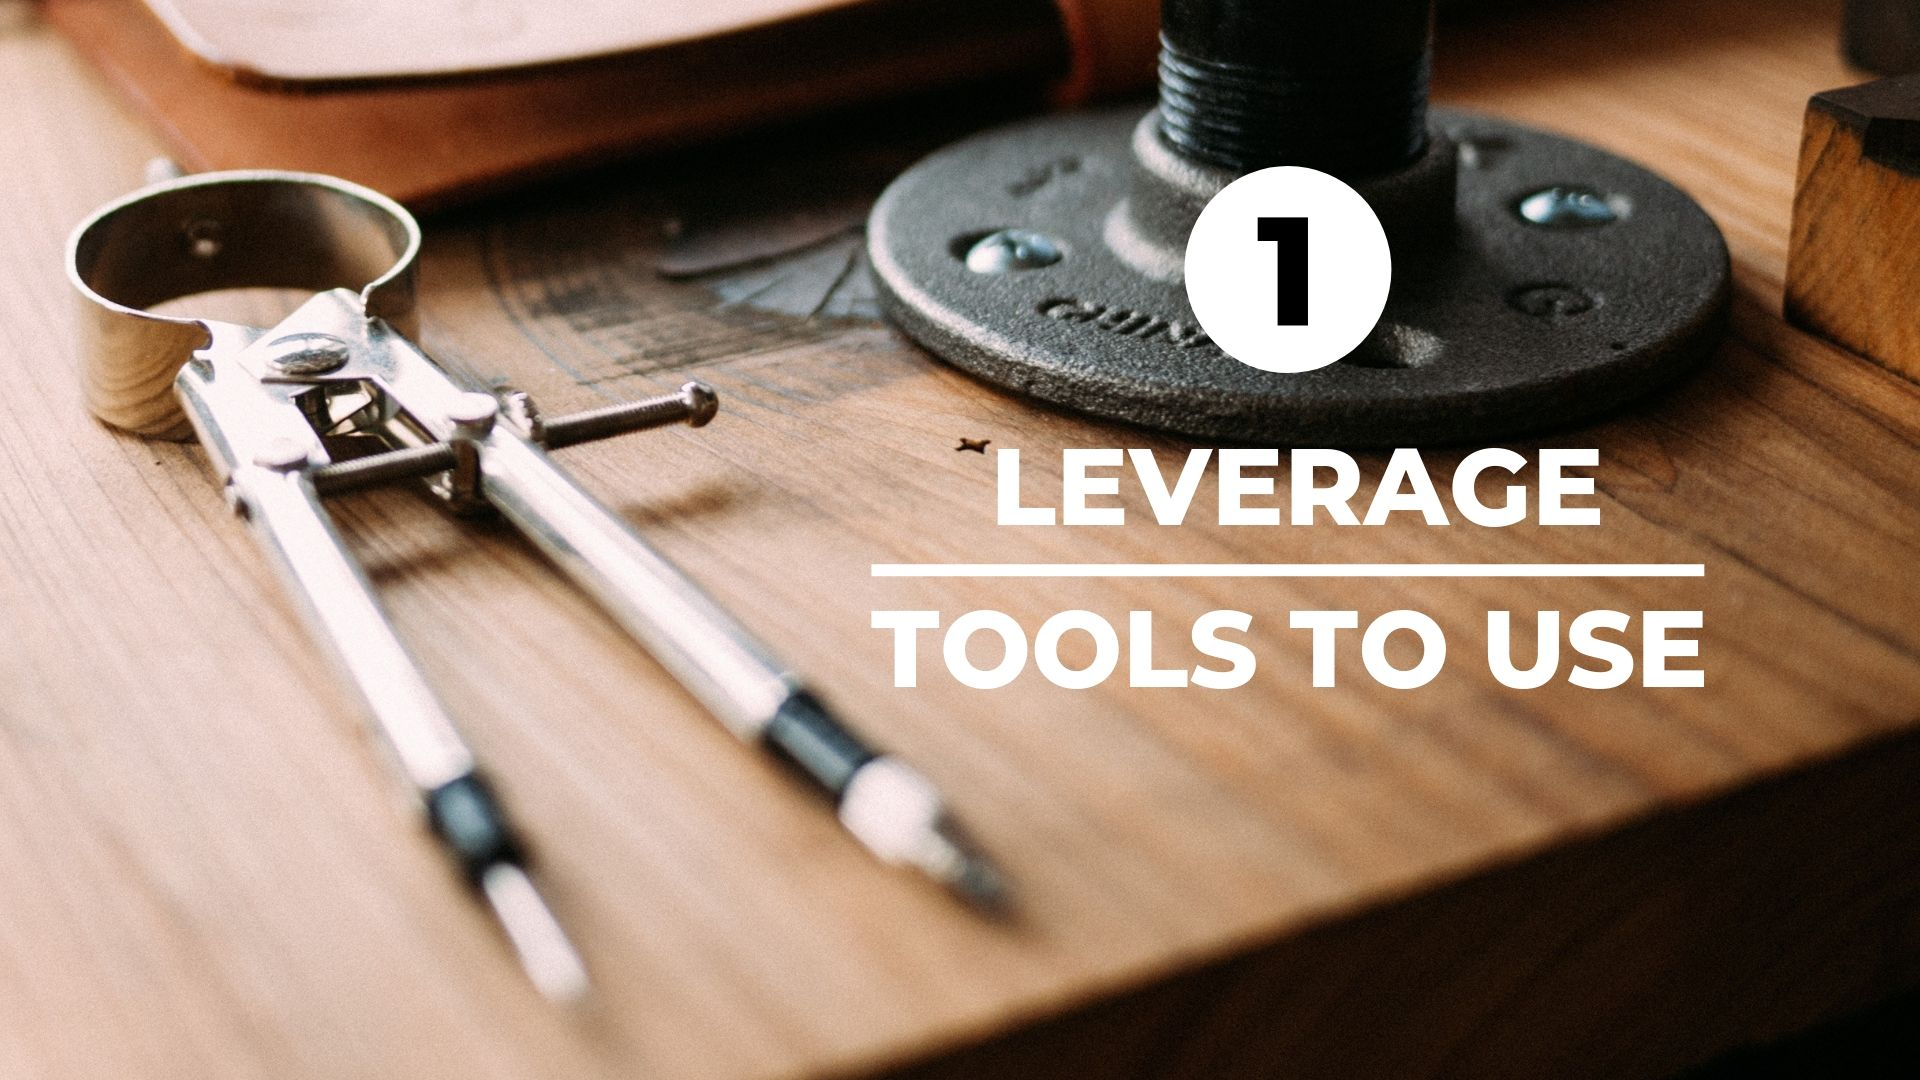 leverage tools to use with tools on desk